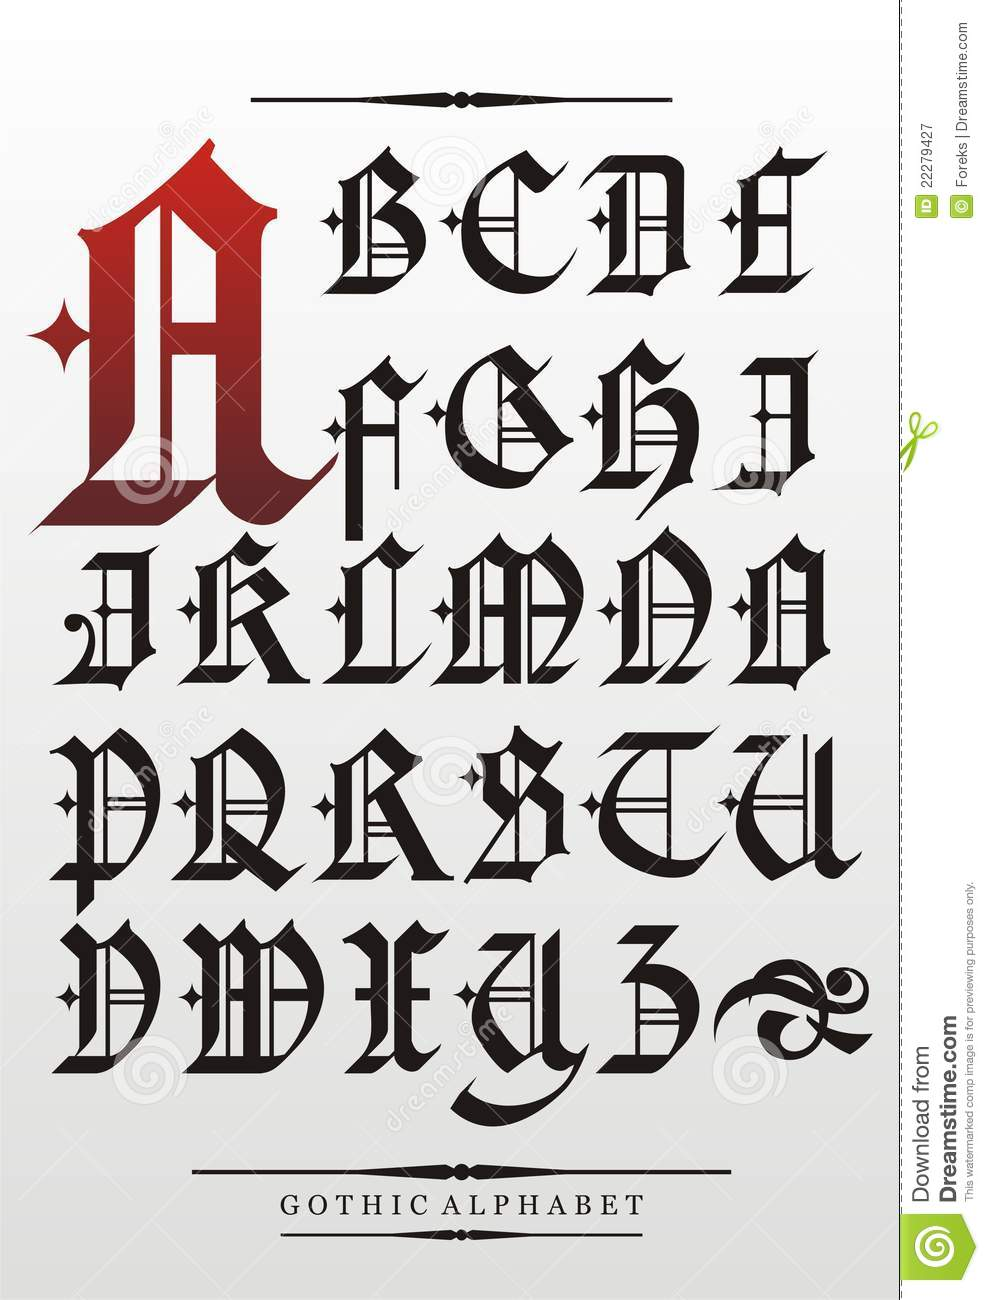 Gothic Font Alphabet Stock Vector Illustration Of Text